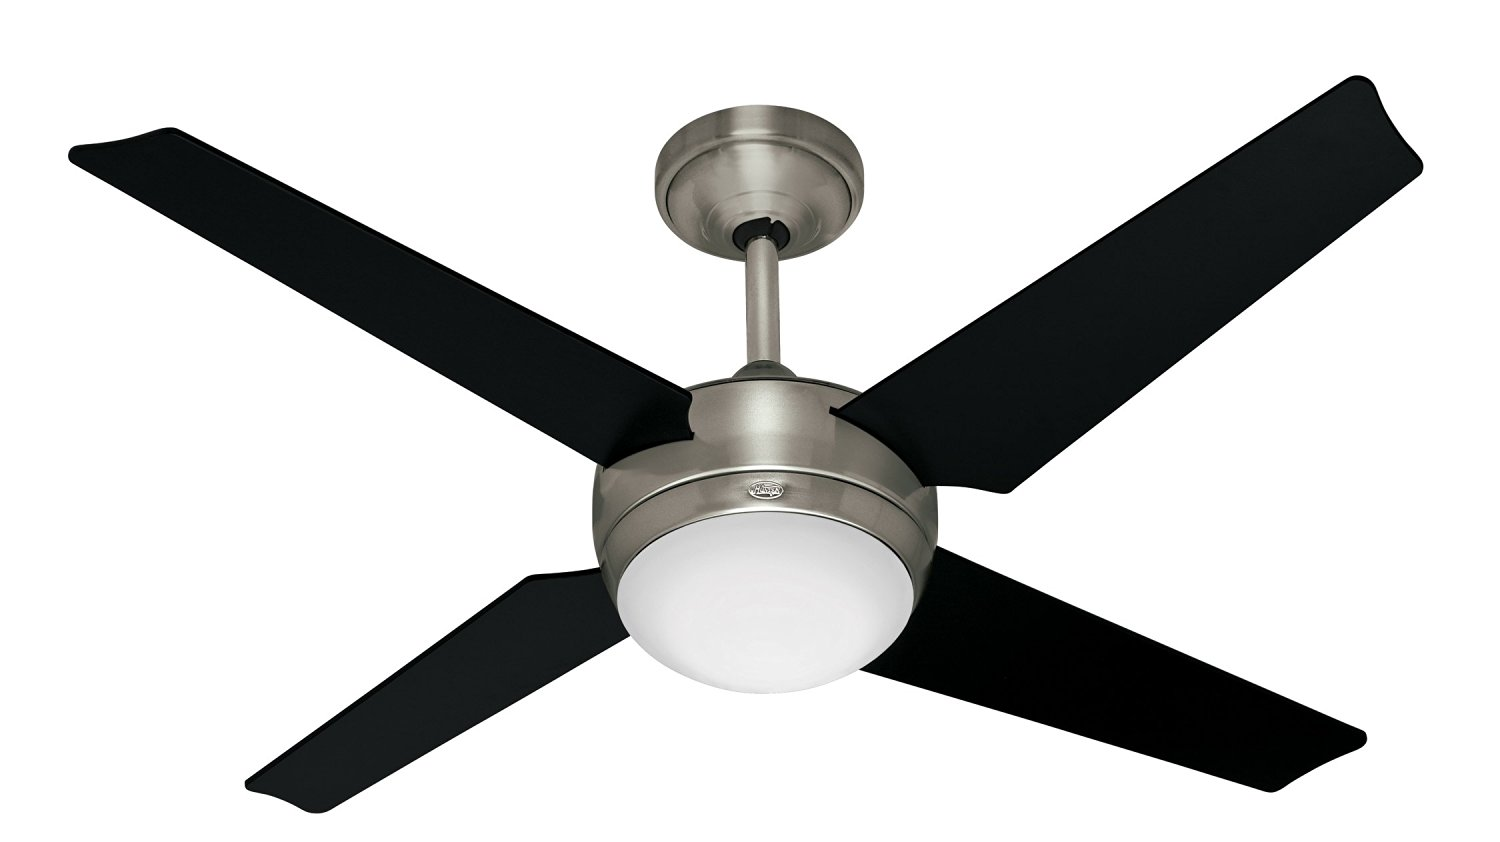 Hunter 21585 Sonic 52 Inch Brushed Nickel Ceiling Fan With Light Kit And Remote